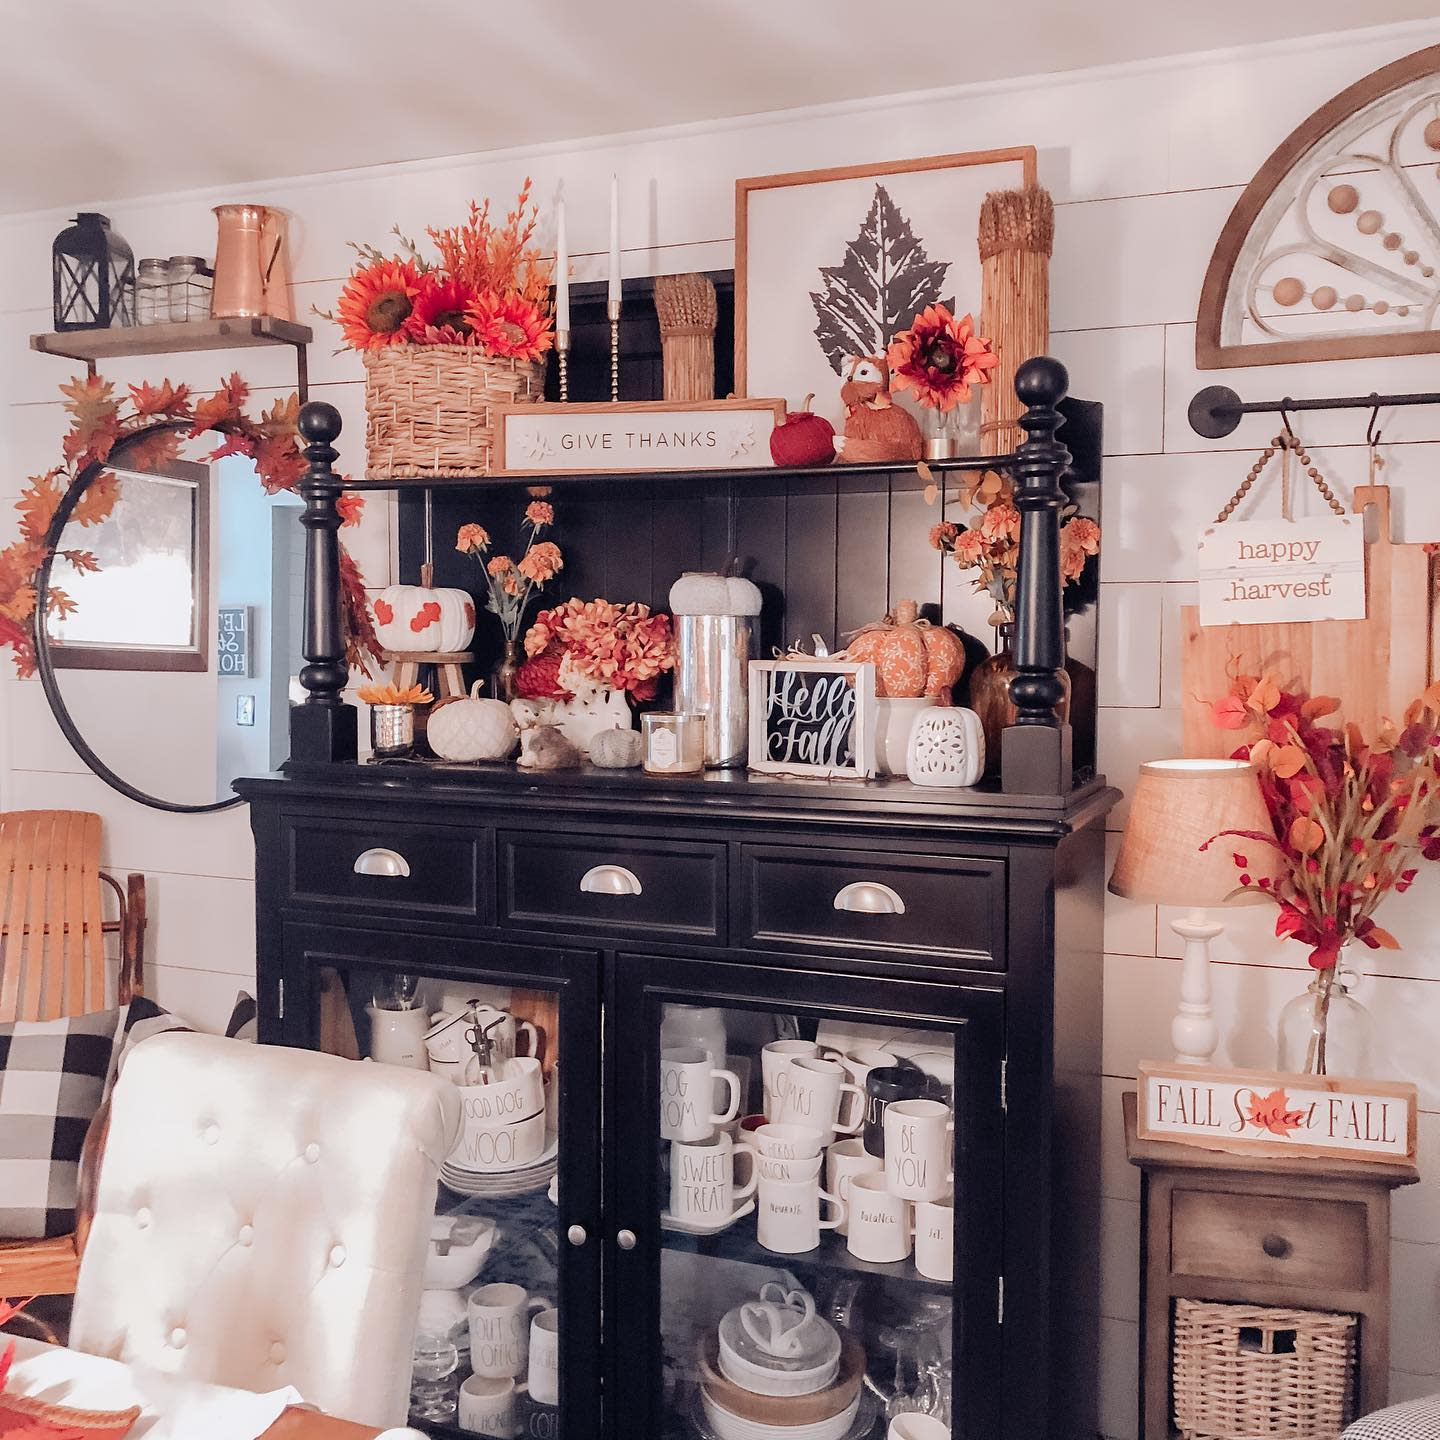 autumn-fall-decorating-ideas-the_briarcottage